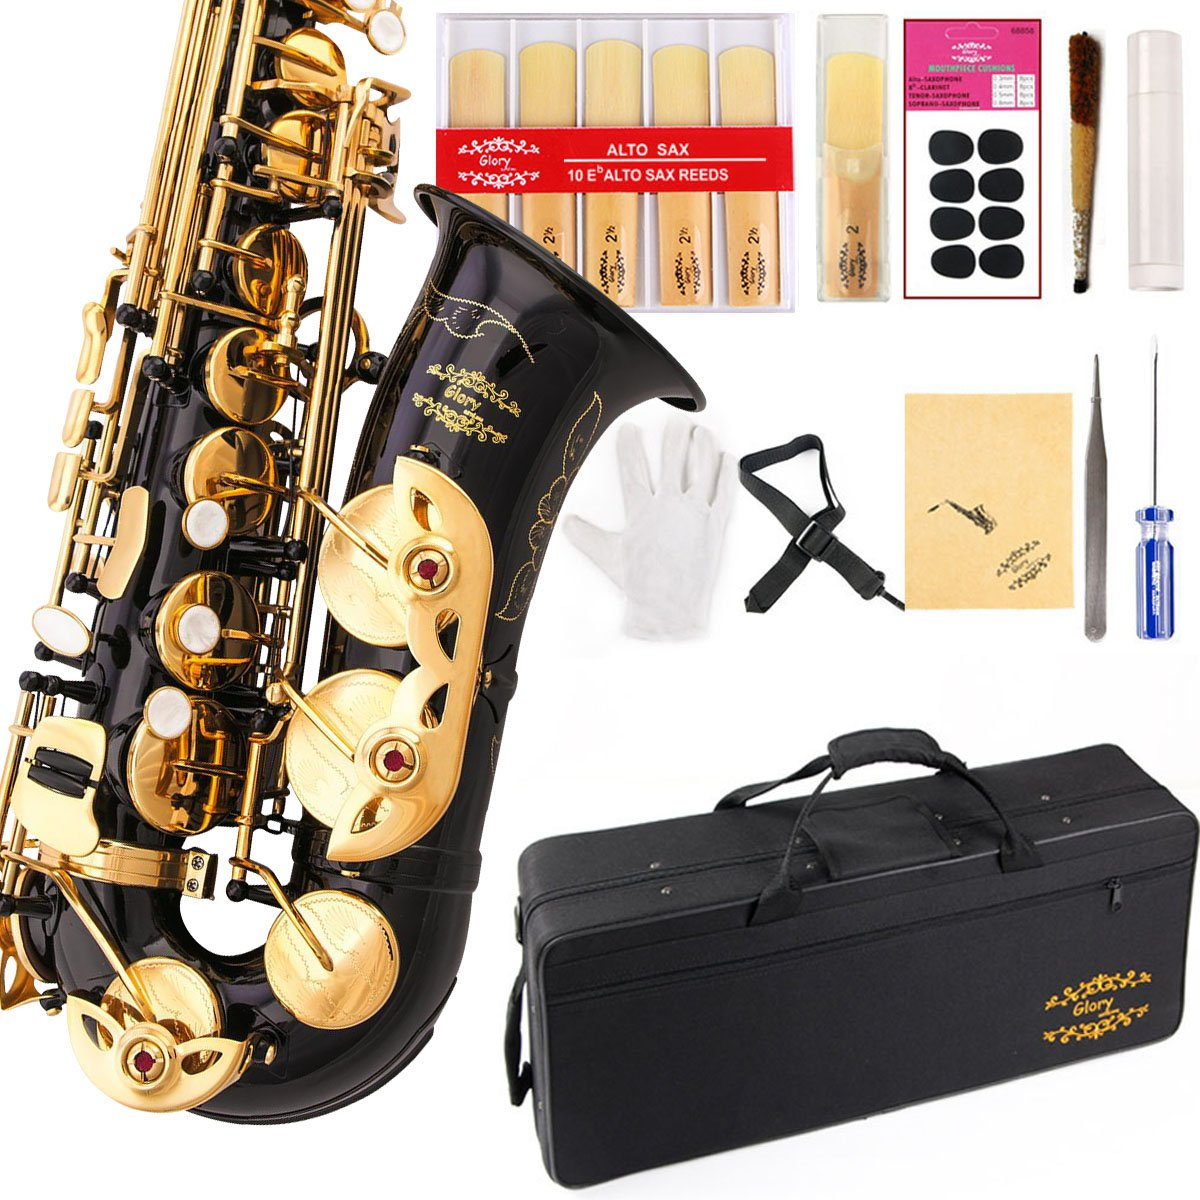 Glory High Grade Engraved Flowers Black /Gold Keys E Flat Alto Saxophone with 11reeds,8 Pads cushions,case,carekit-More Colors with Silver or Gold keys